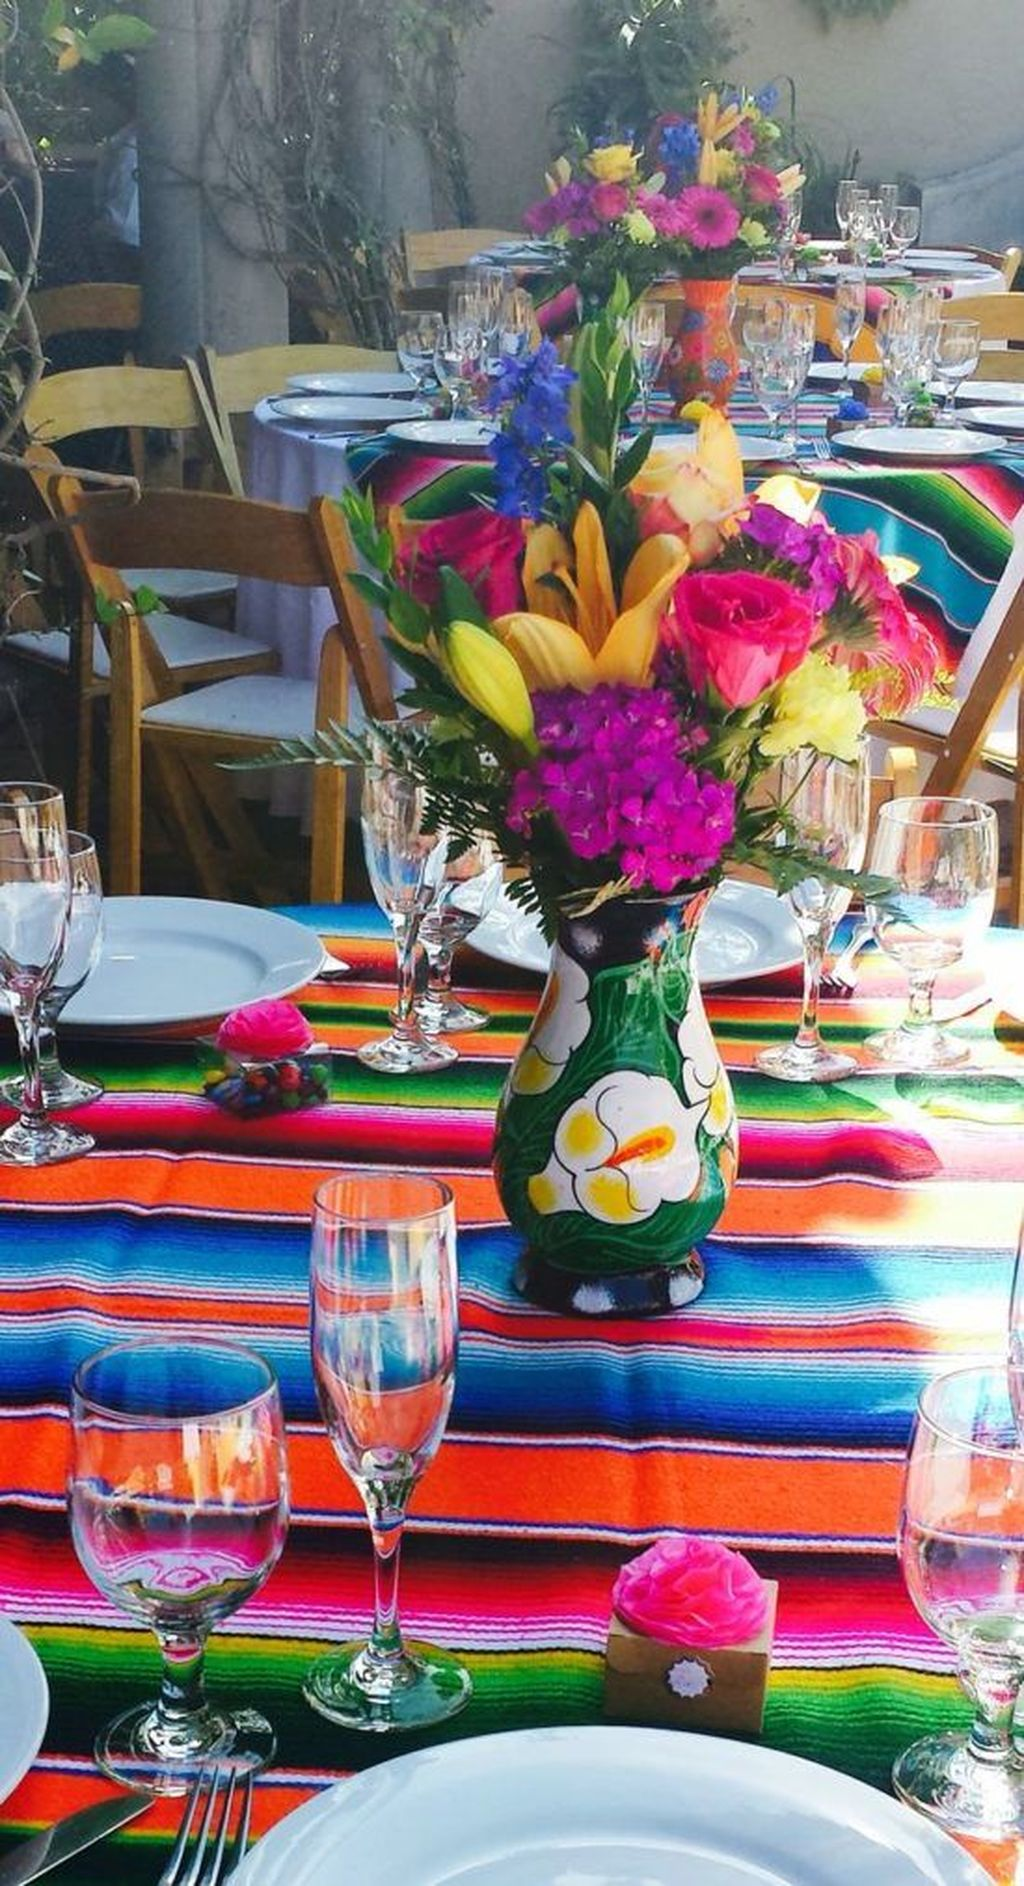 Fabulous Floral Theme Party Decor Ideas Best For Summertime 05